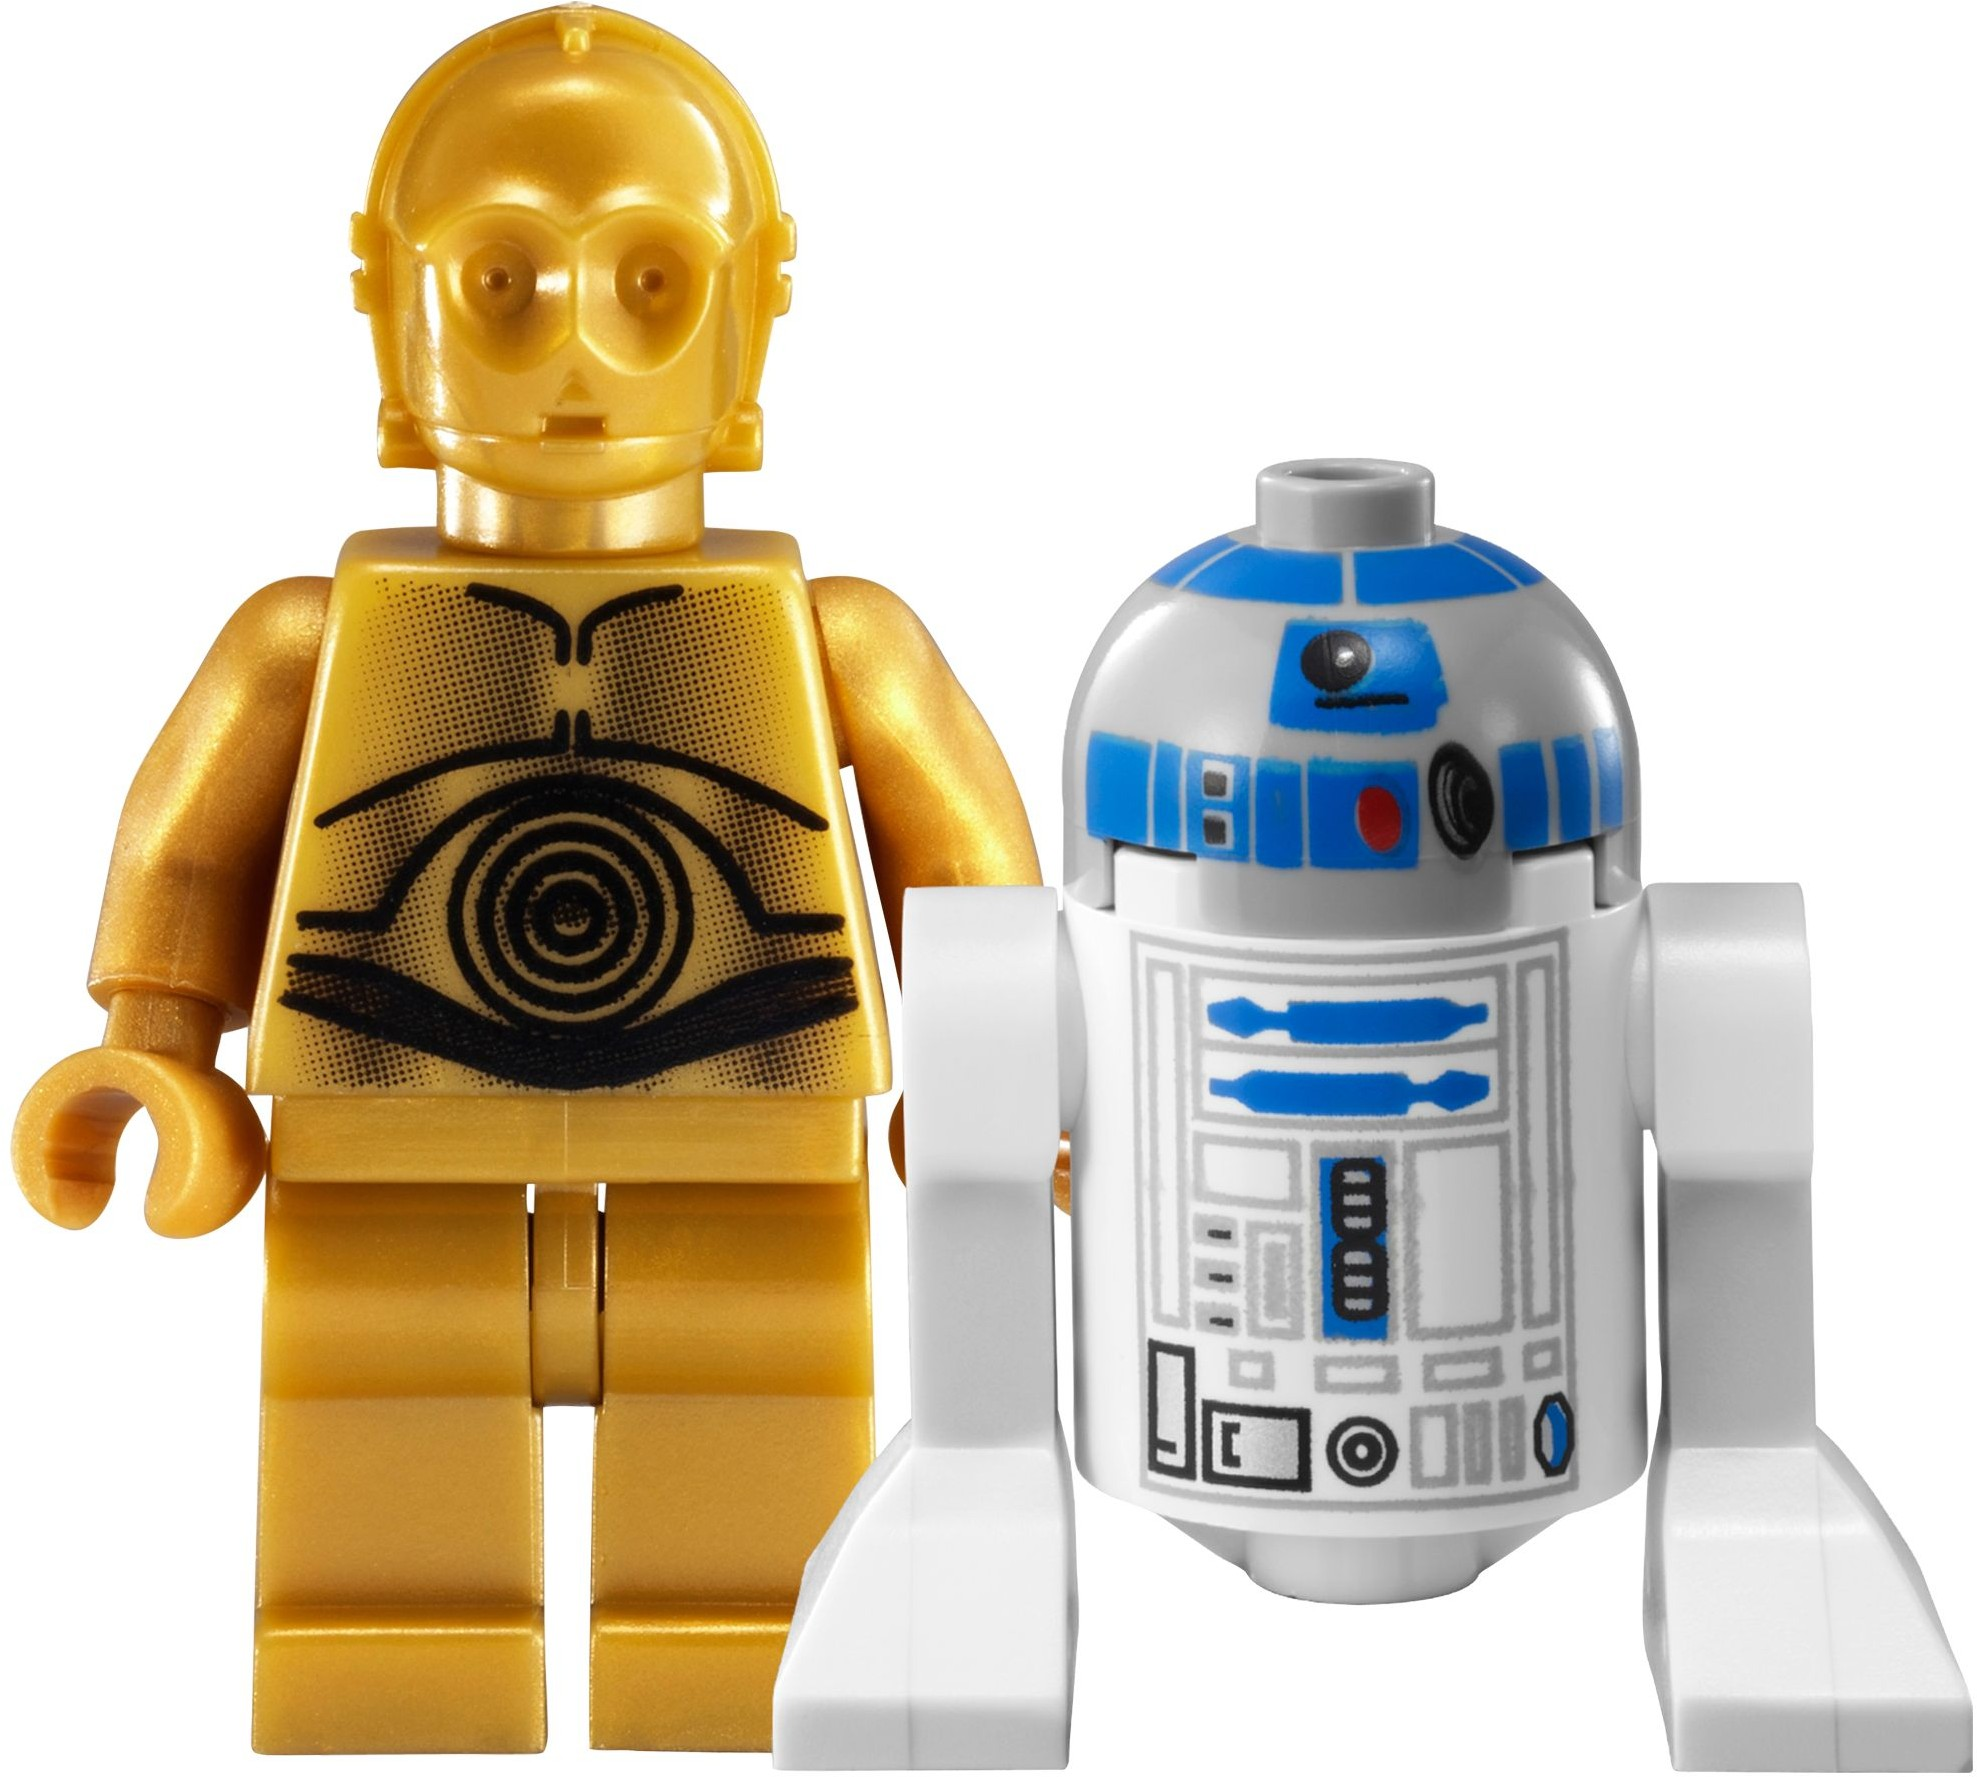 R2d2 And C3po Lego Lego 5002210 C-3PO and...